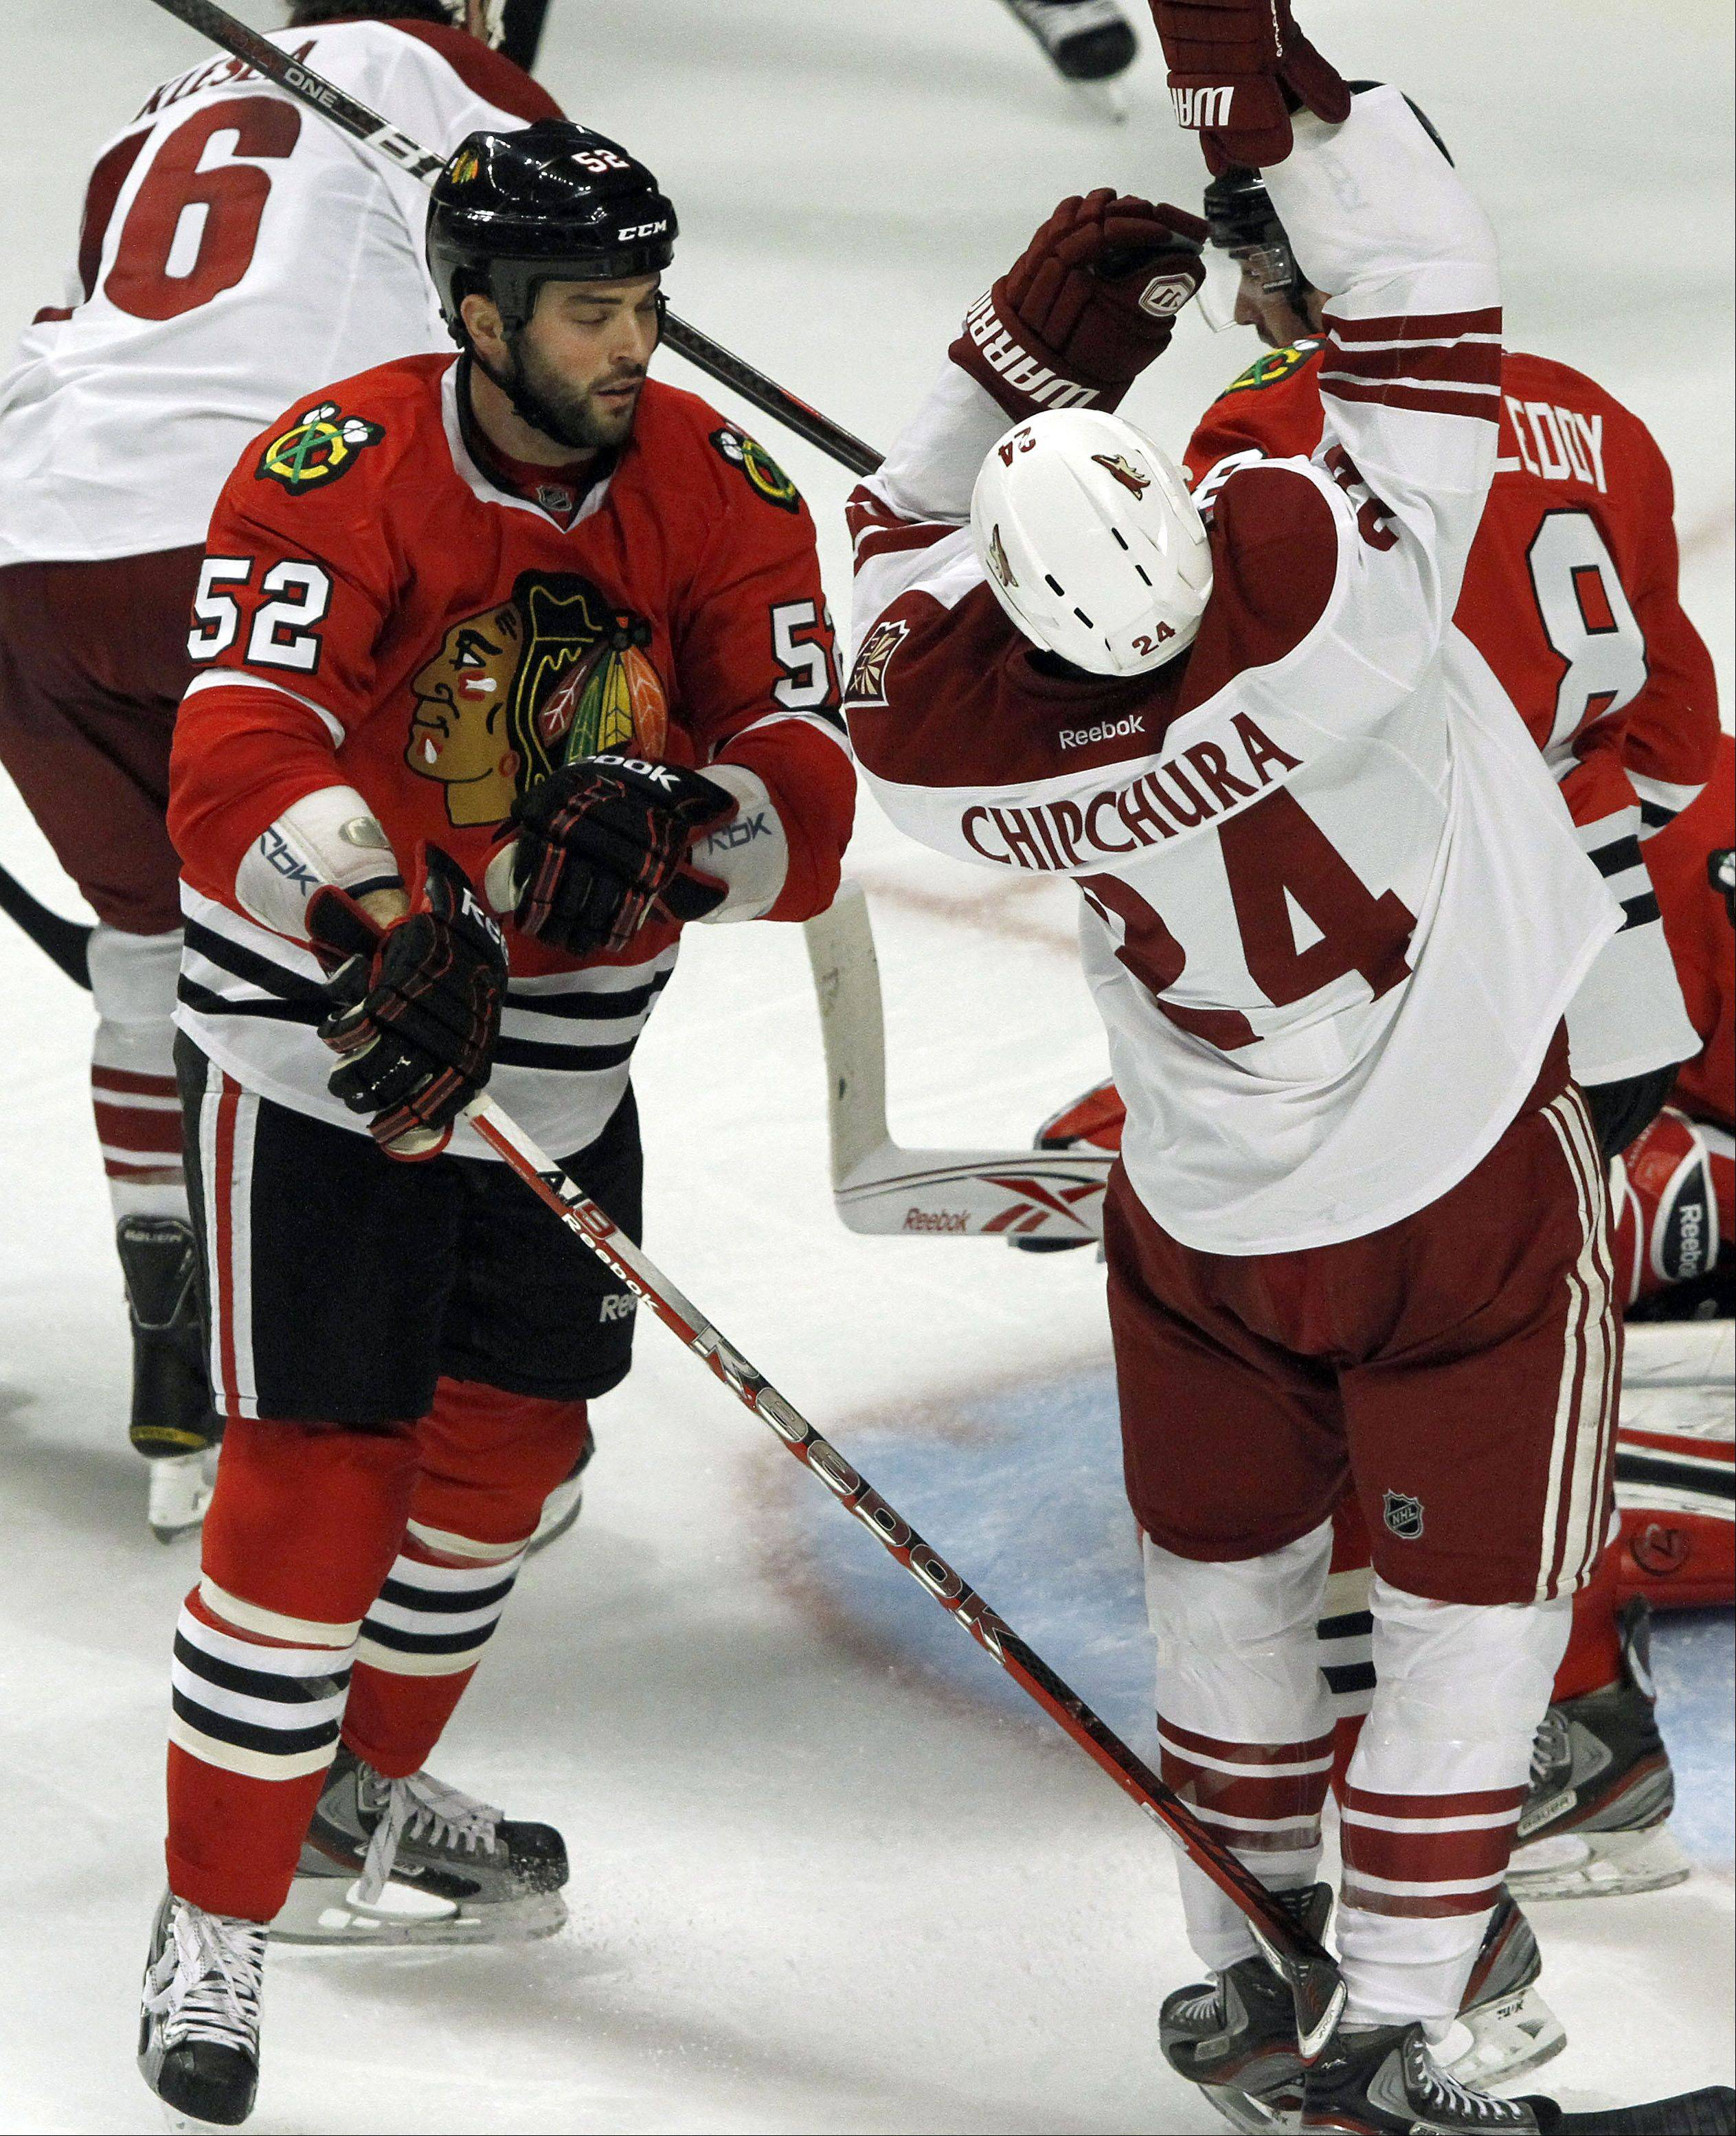 Chicago Blackhawks' left wing Brandon Bollig gets into an altercation with Phoenix Coyotes center Kyle Chipchura during Game 3 of the Western Conference quarterfinals at The United Center in Chicago Tuesday night.